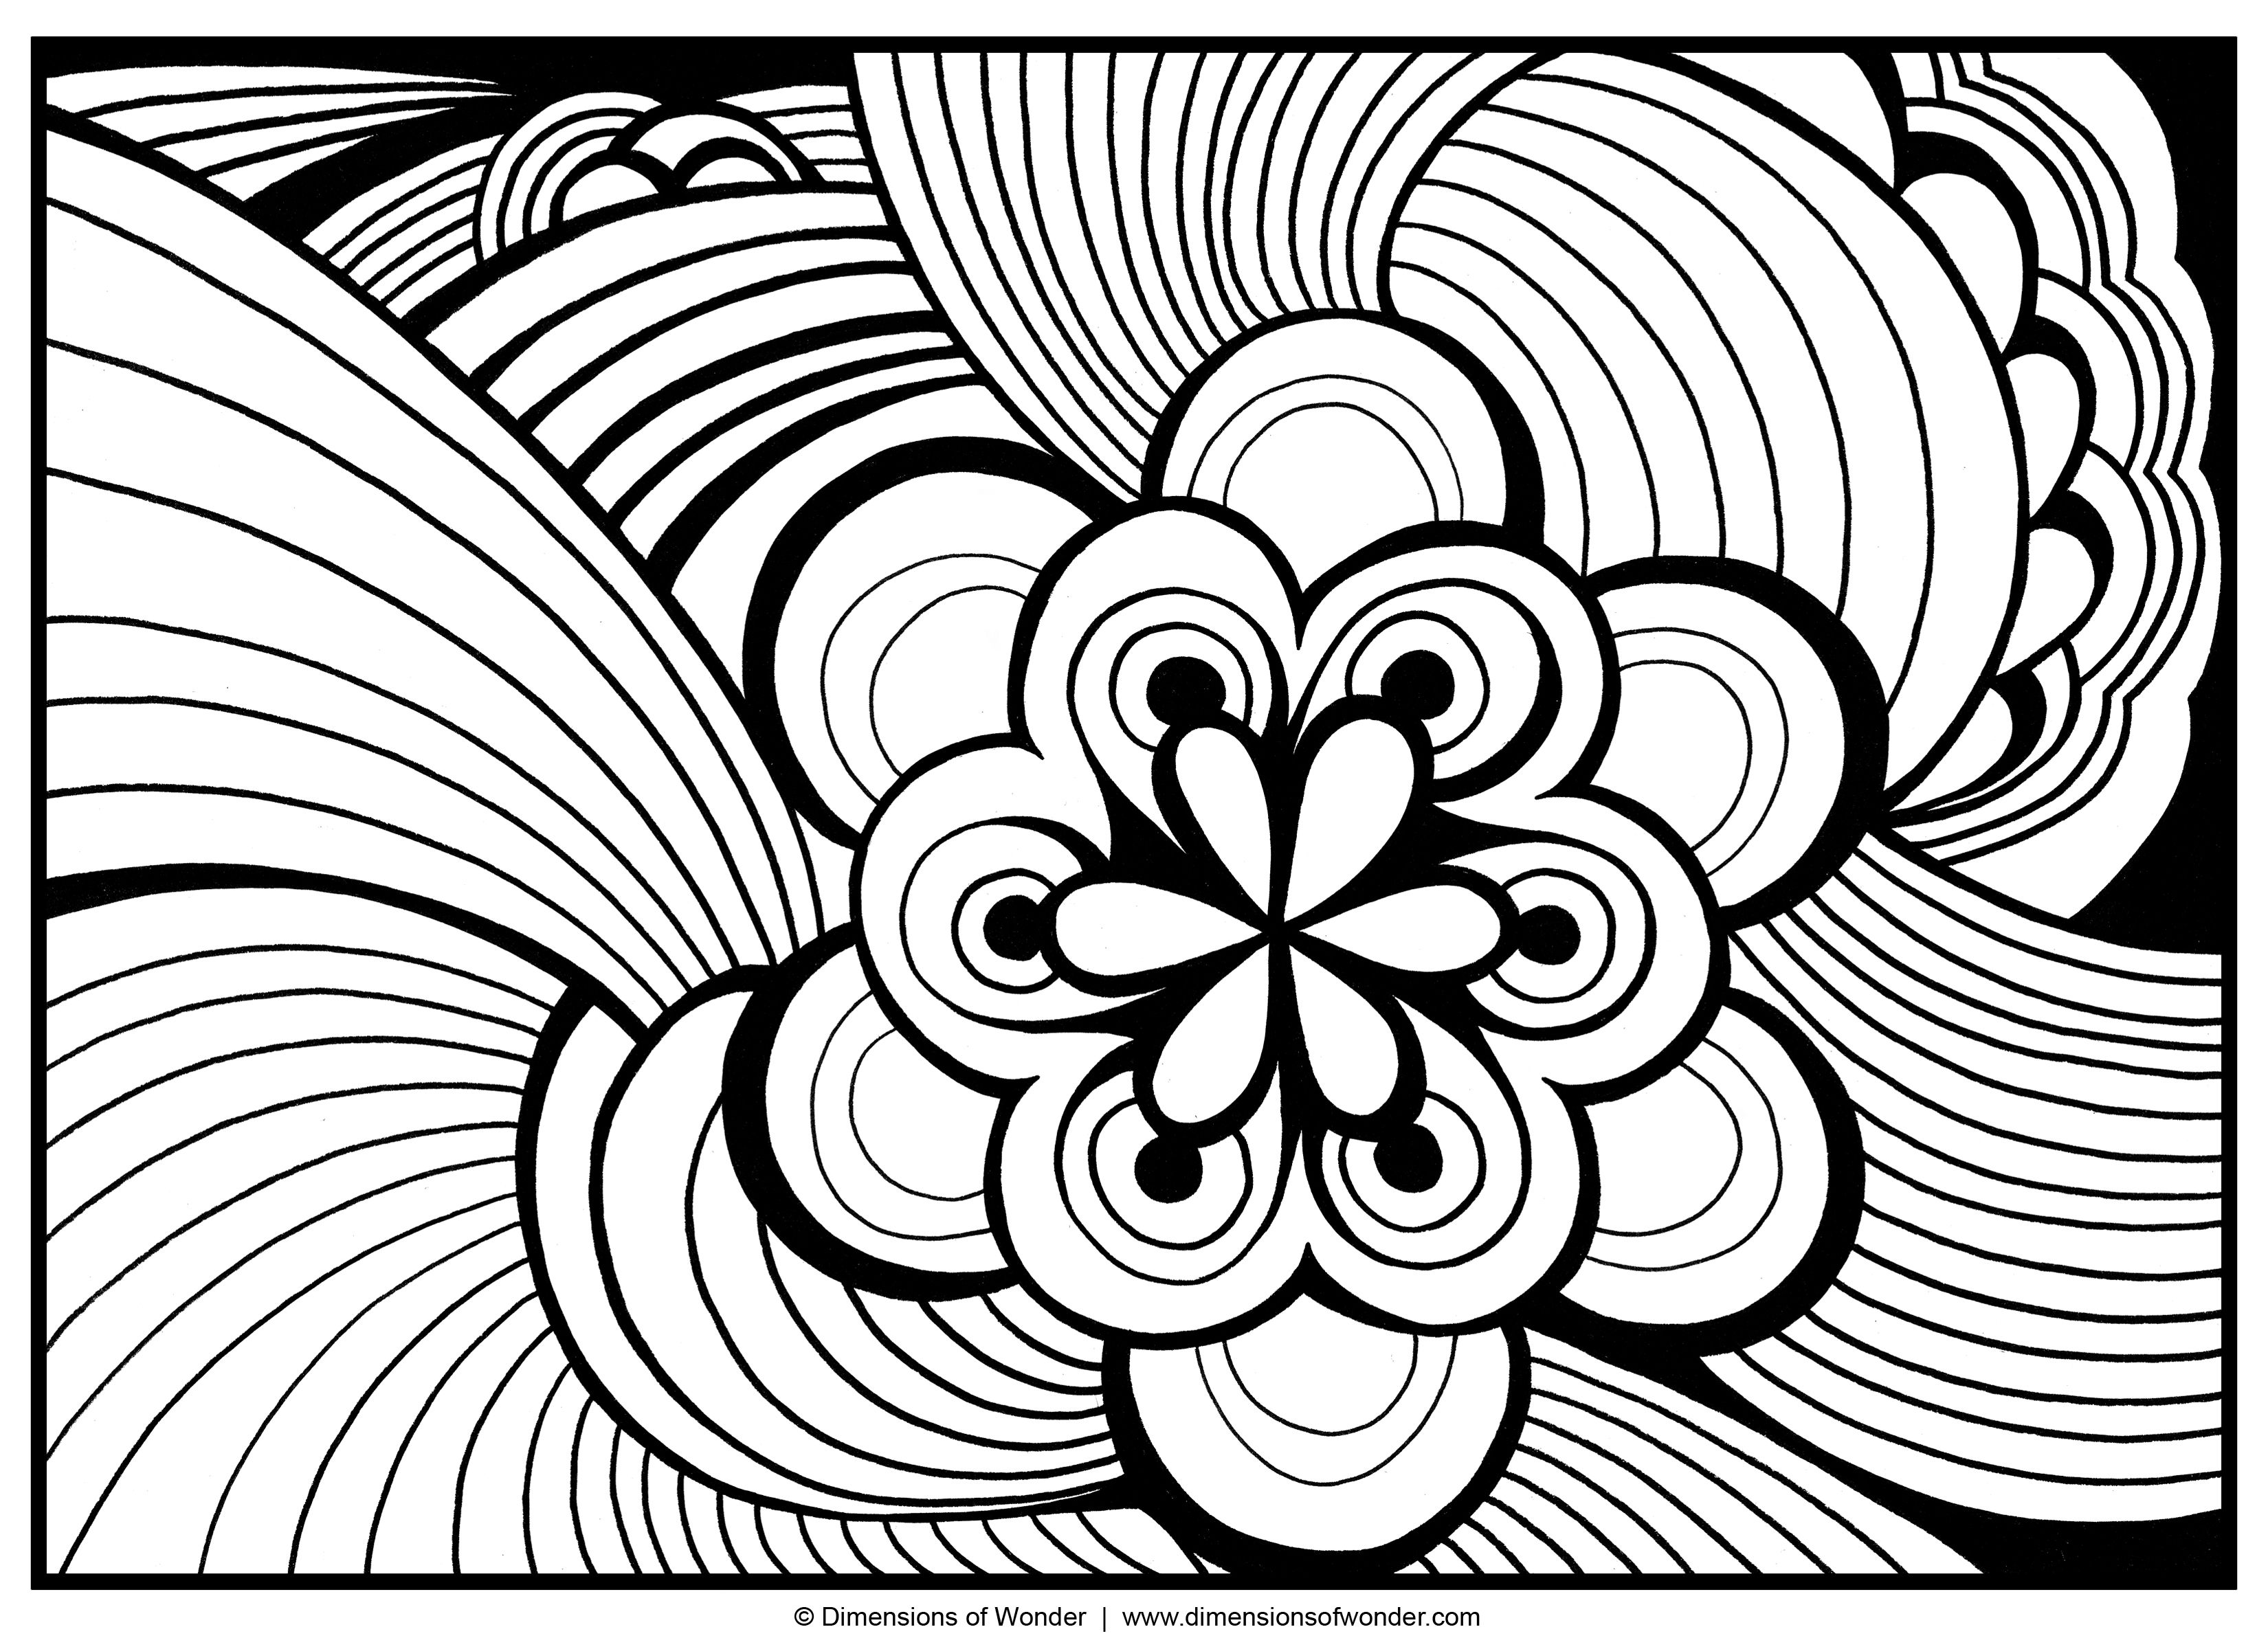 Free coloring pages for adults - Abstract Coloring Pages Free Large Images